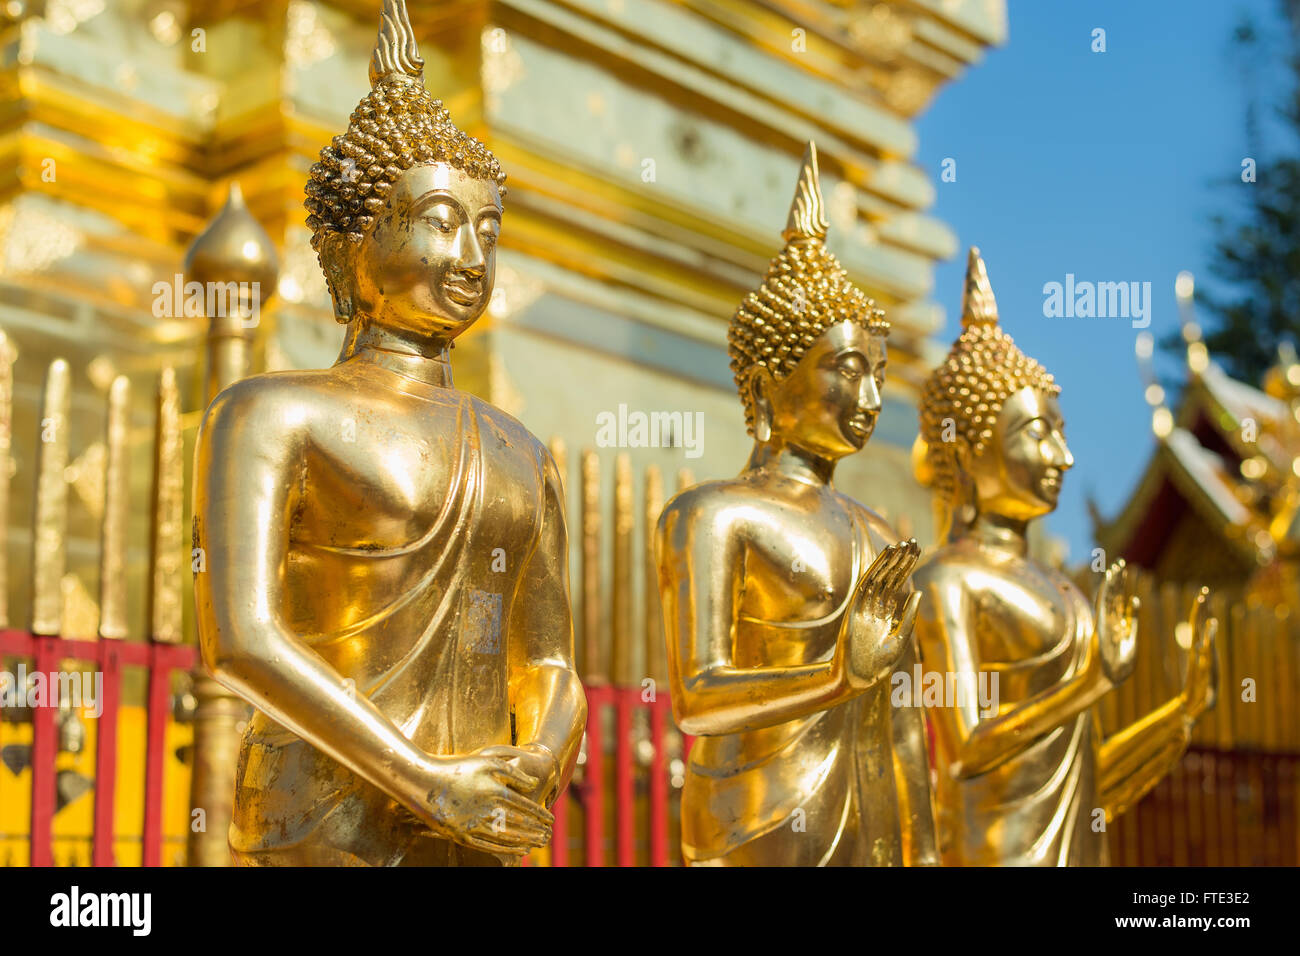 Wat Phra That Doi Suthep in Chiang Mai, Thailand - Stock Image